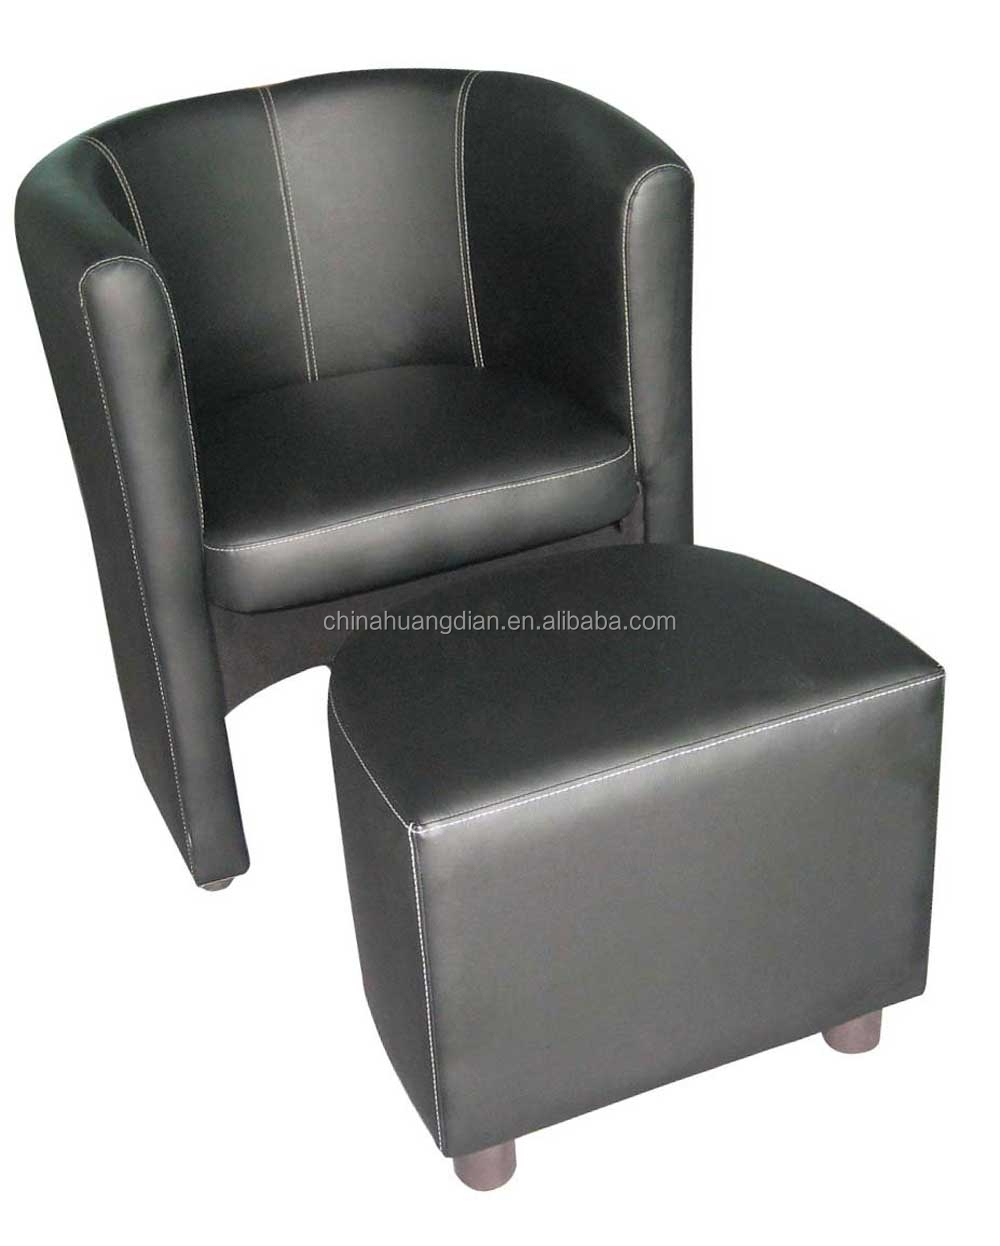 custom round lounge chair with black leather HDL1672